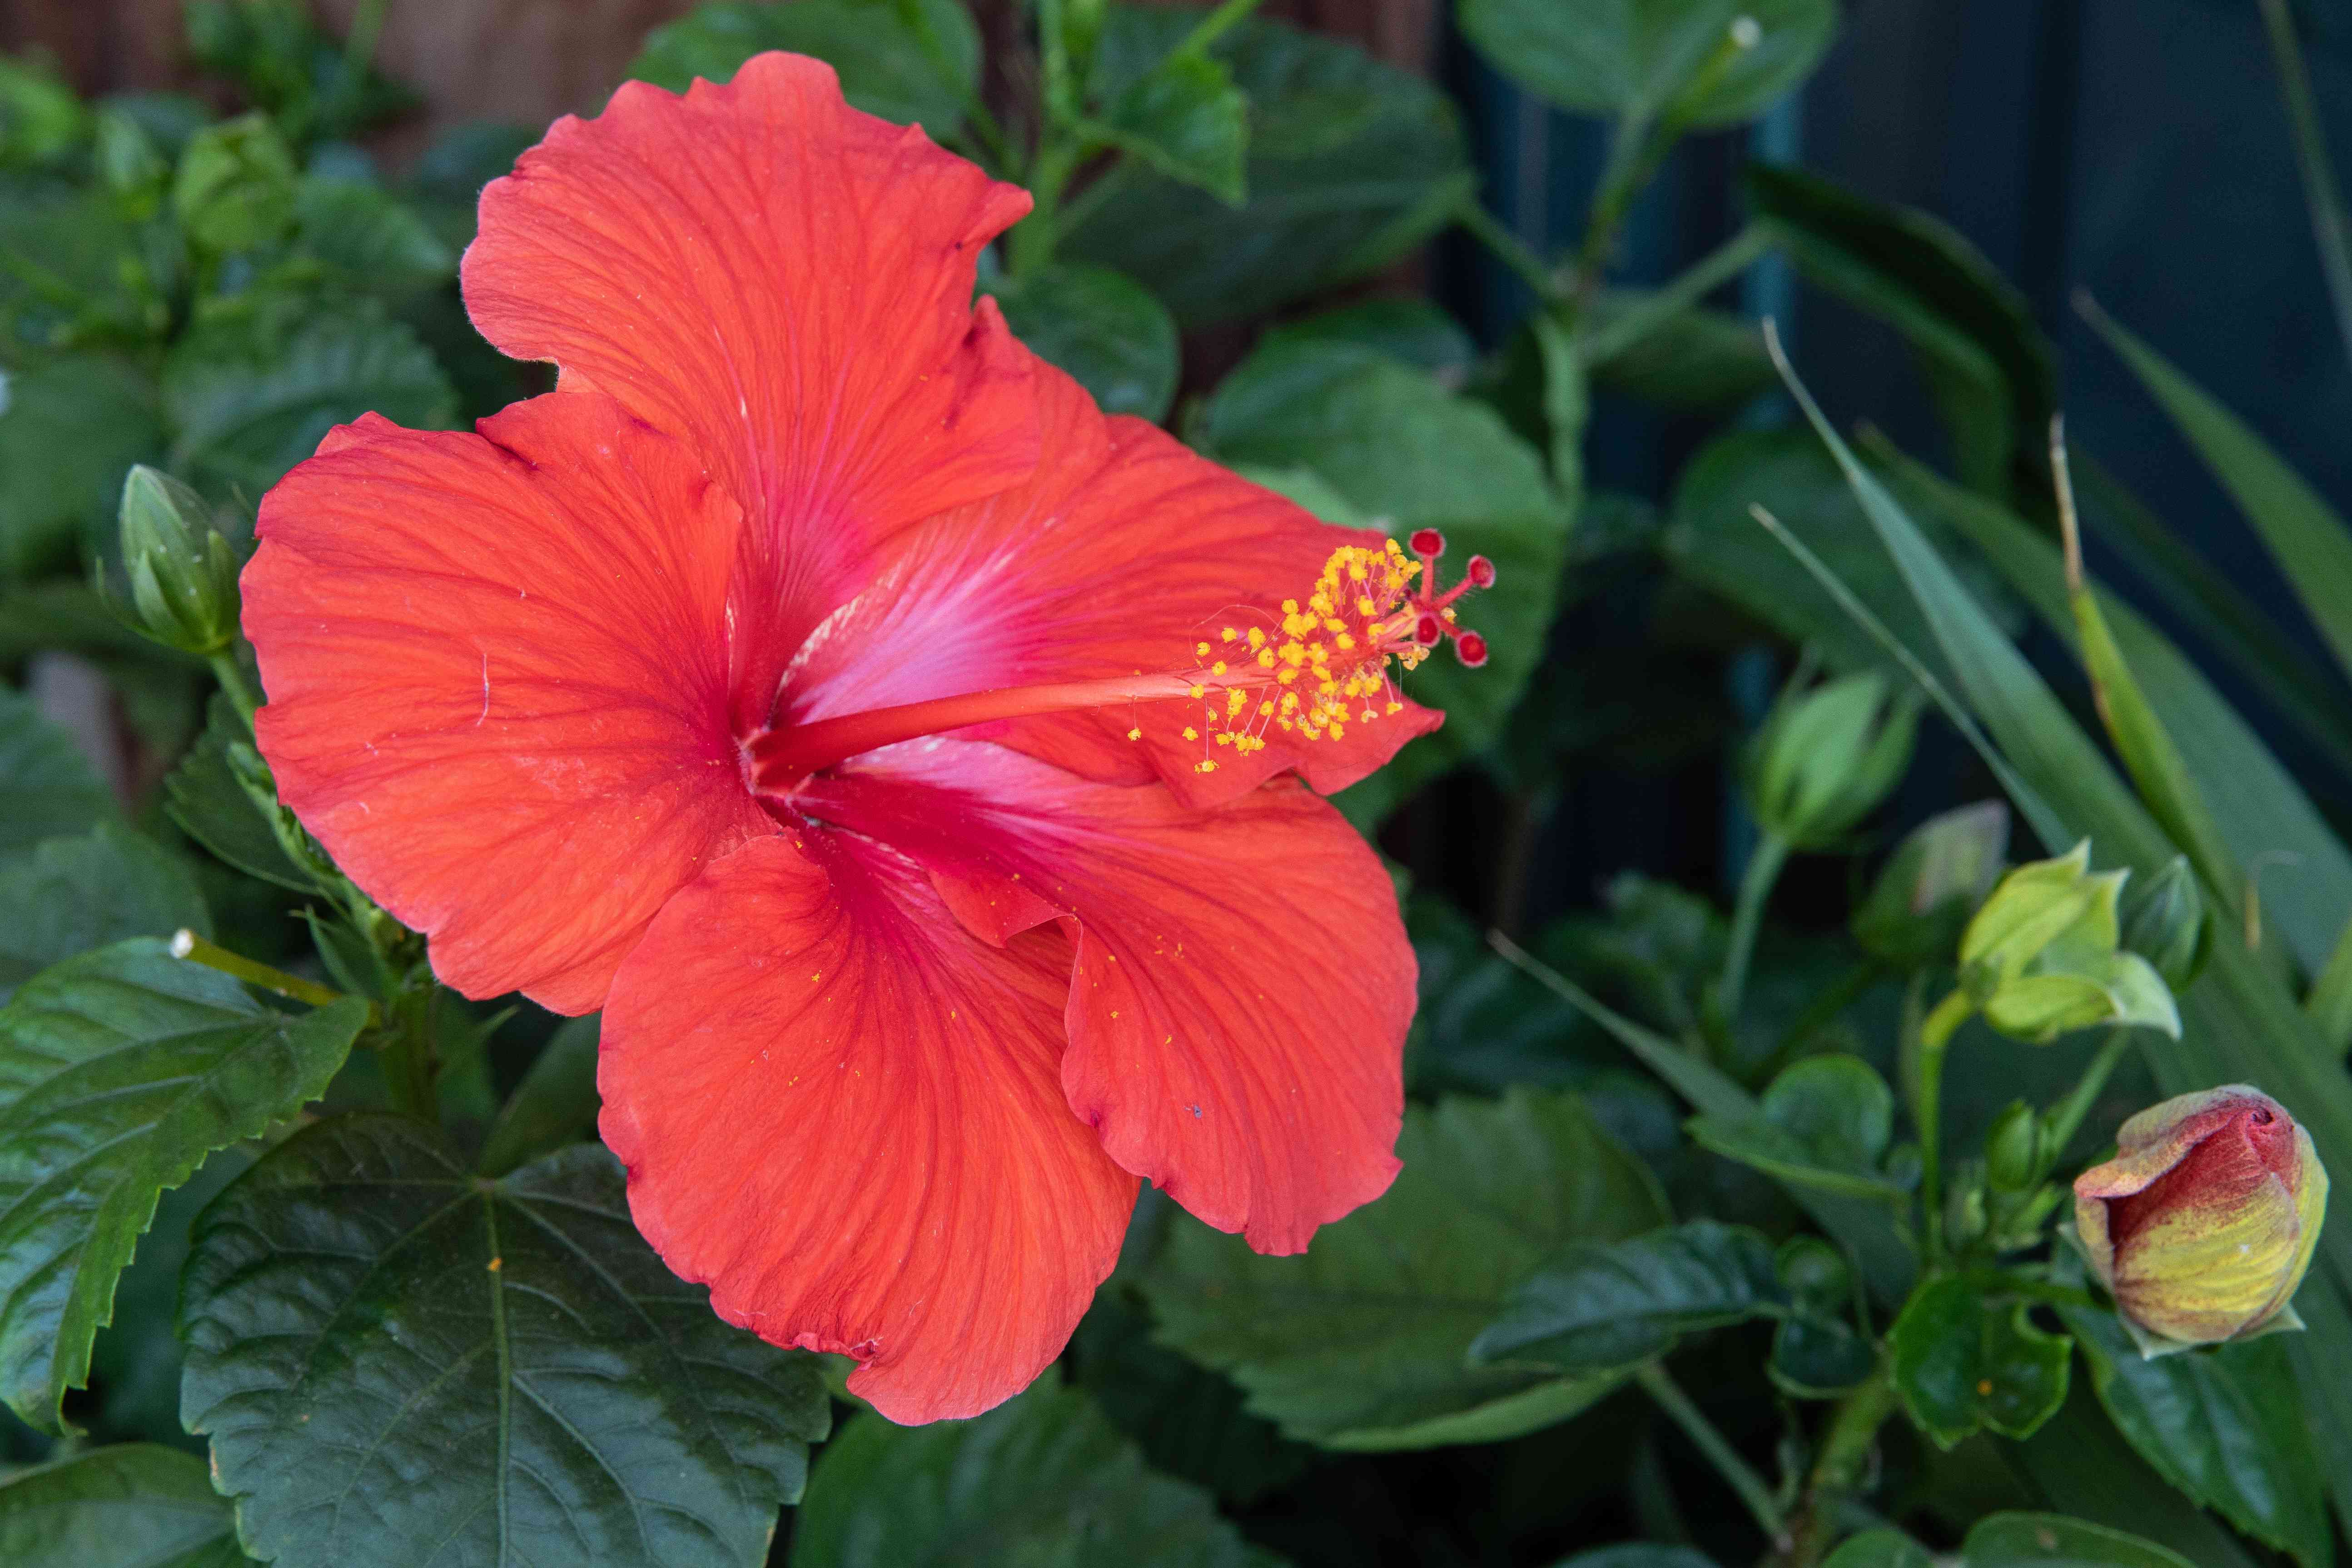 Hibiscus plant with large red flower with long stamen next to buds closeup